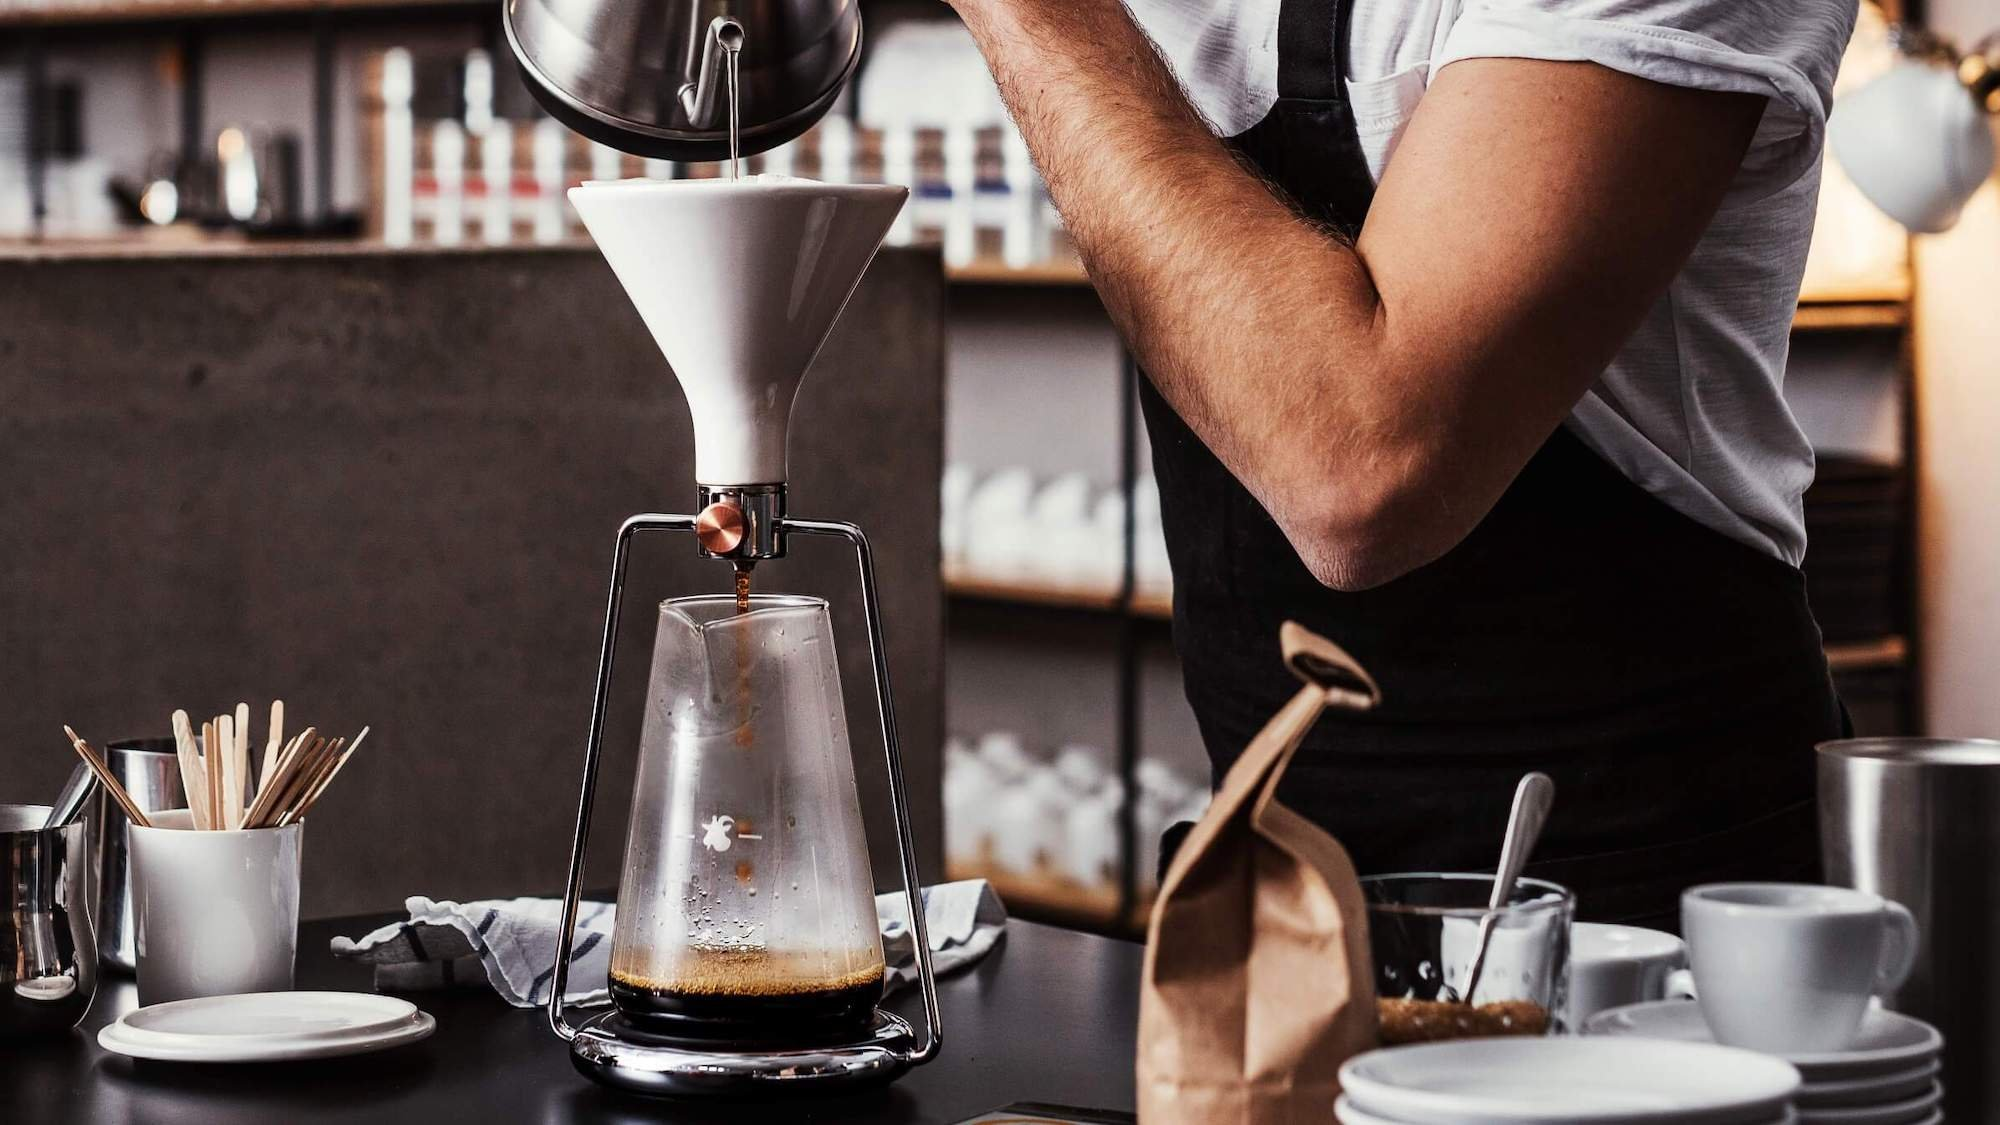 10 Coffee makers you would want to buy now